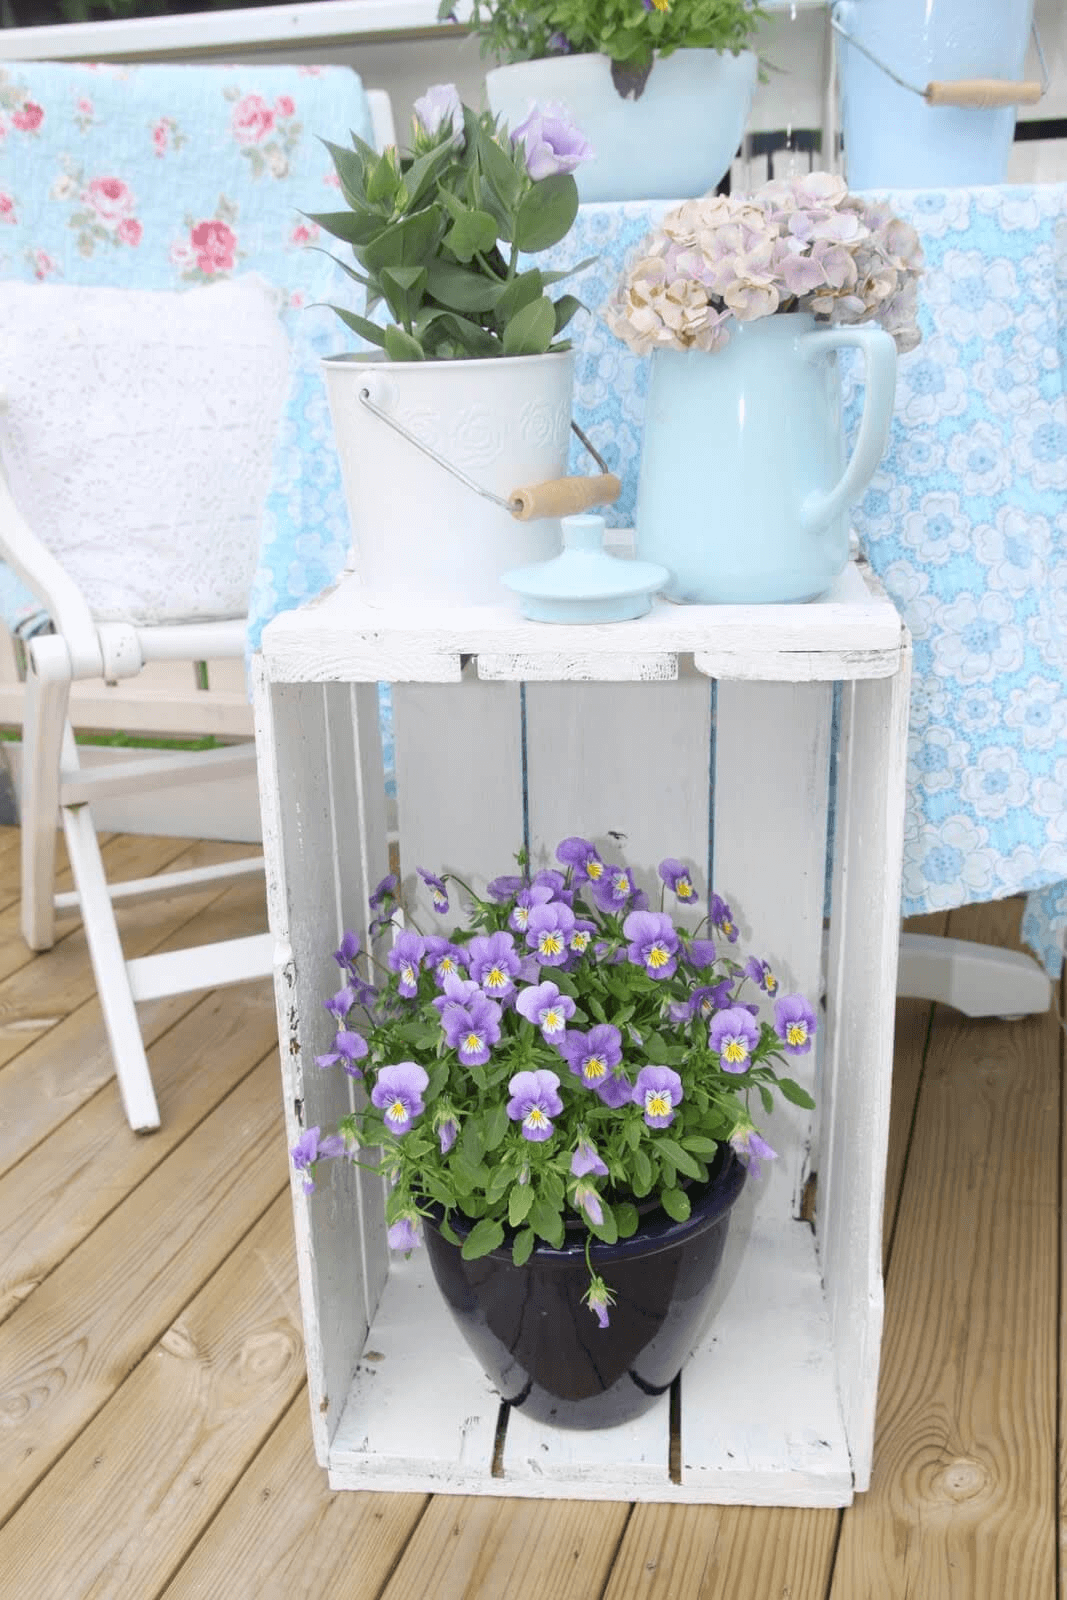 WOODEN CRATE STAND DIY PORCH DECOR IDEAS FOR SUMMER AND SPRING